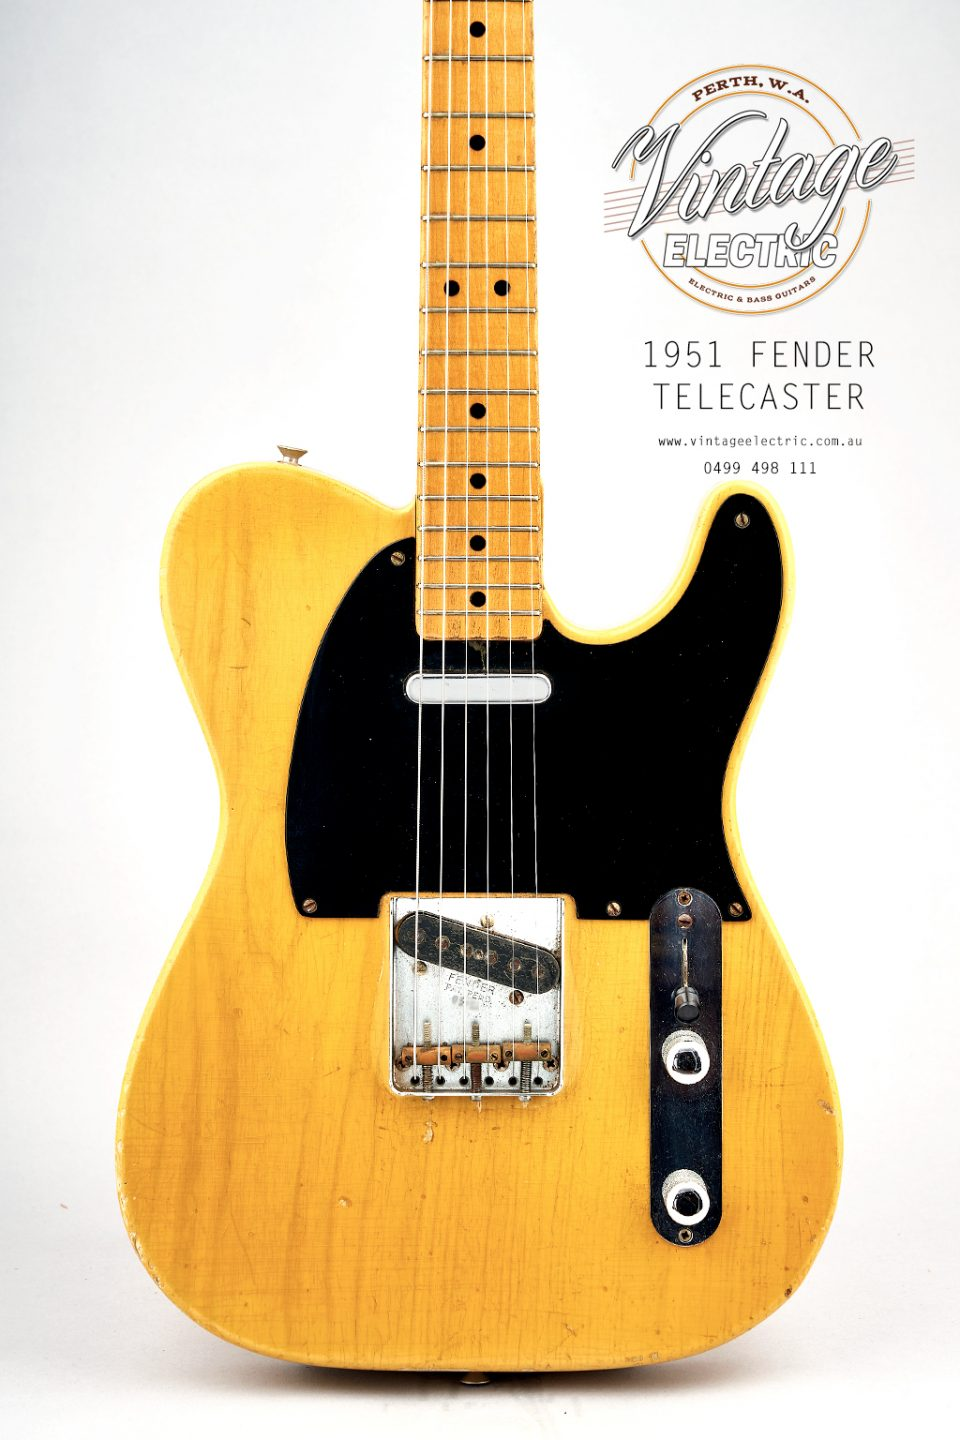 1951 Fender Telecaster Butterscotch Body